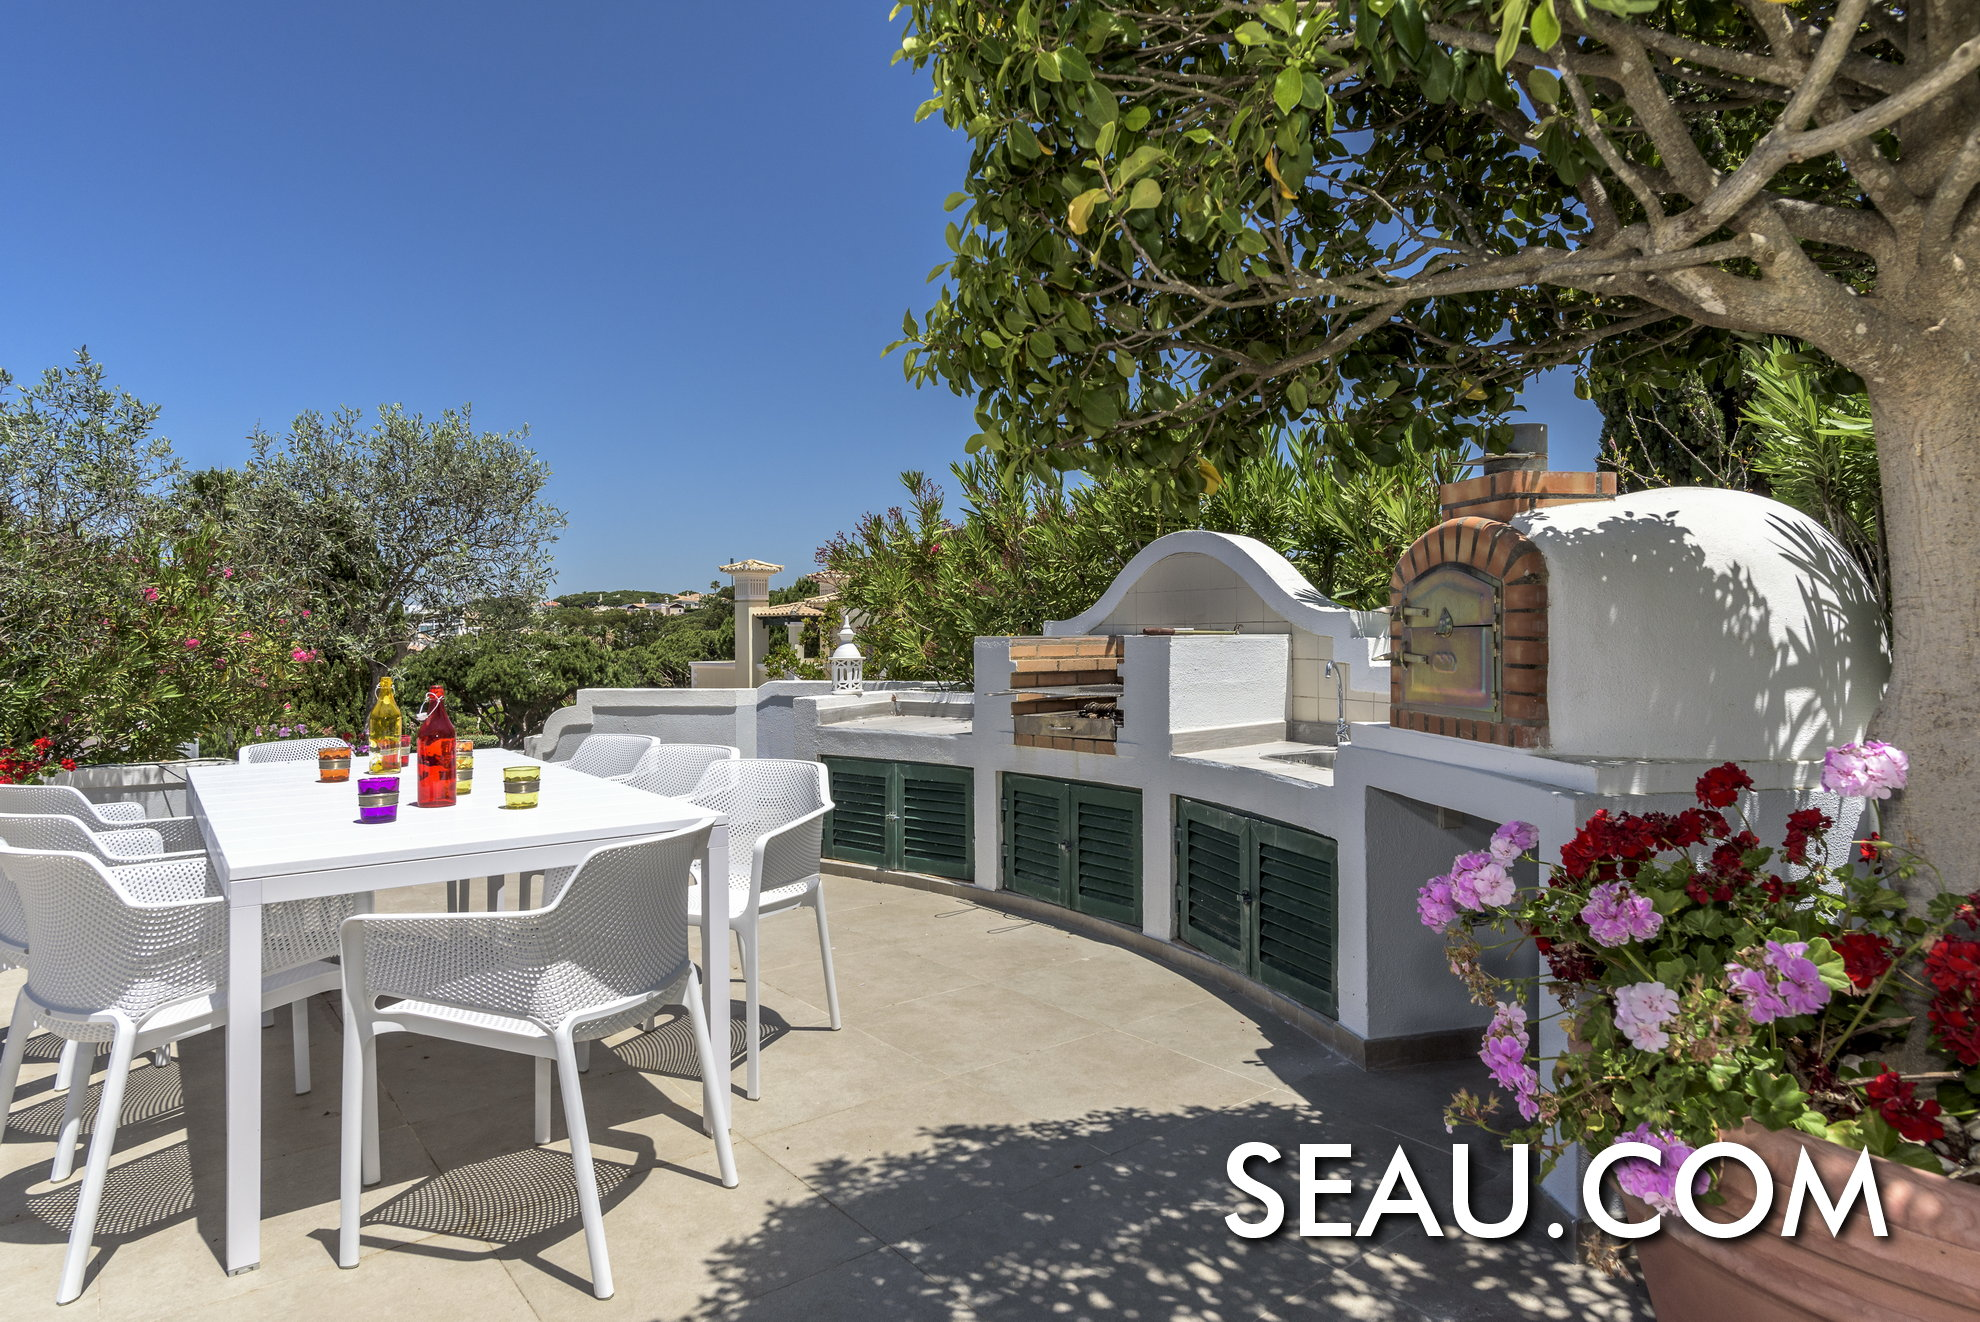 Barbecue and sitting are to enjoy lovely outdoor meals. The traditional pizza oven is definitely a plus!